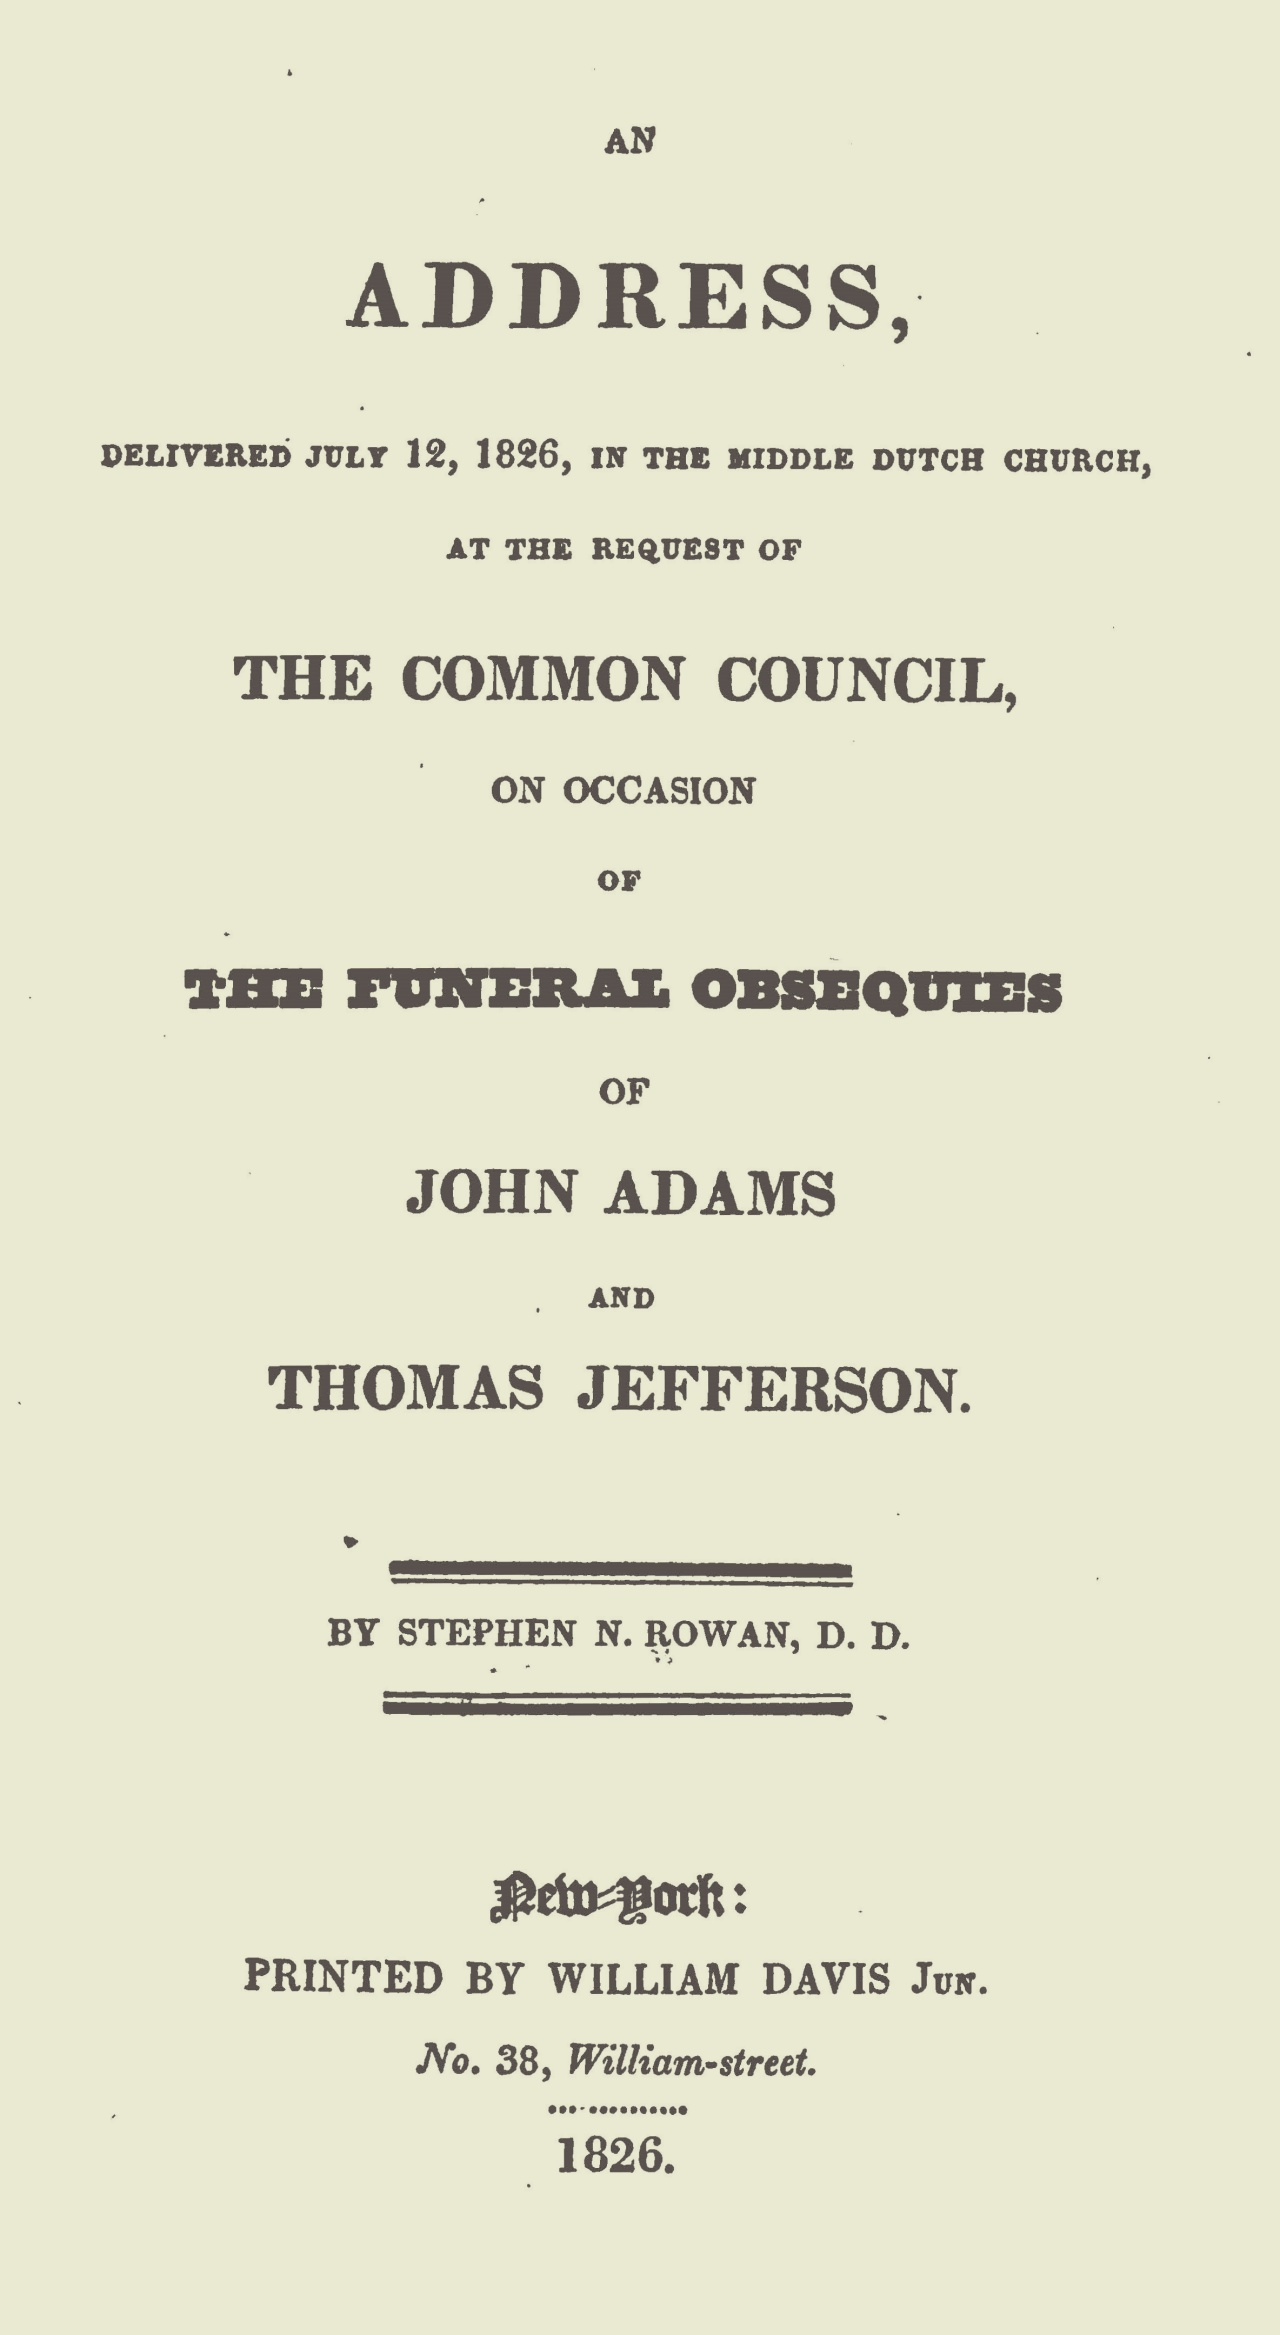 Rowan, Stephen N., An Address Delivered July 12, 1826 Title Page.jpg